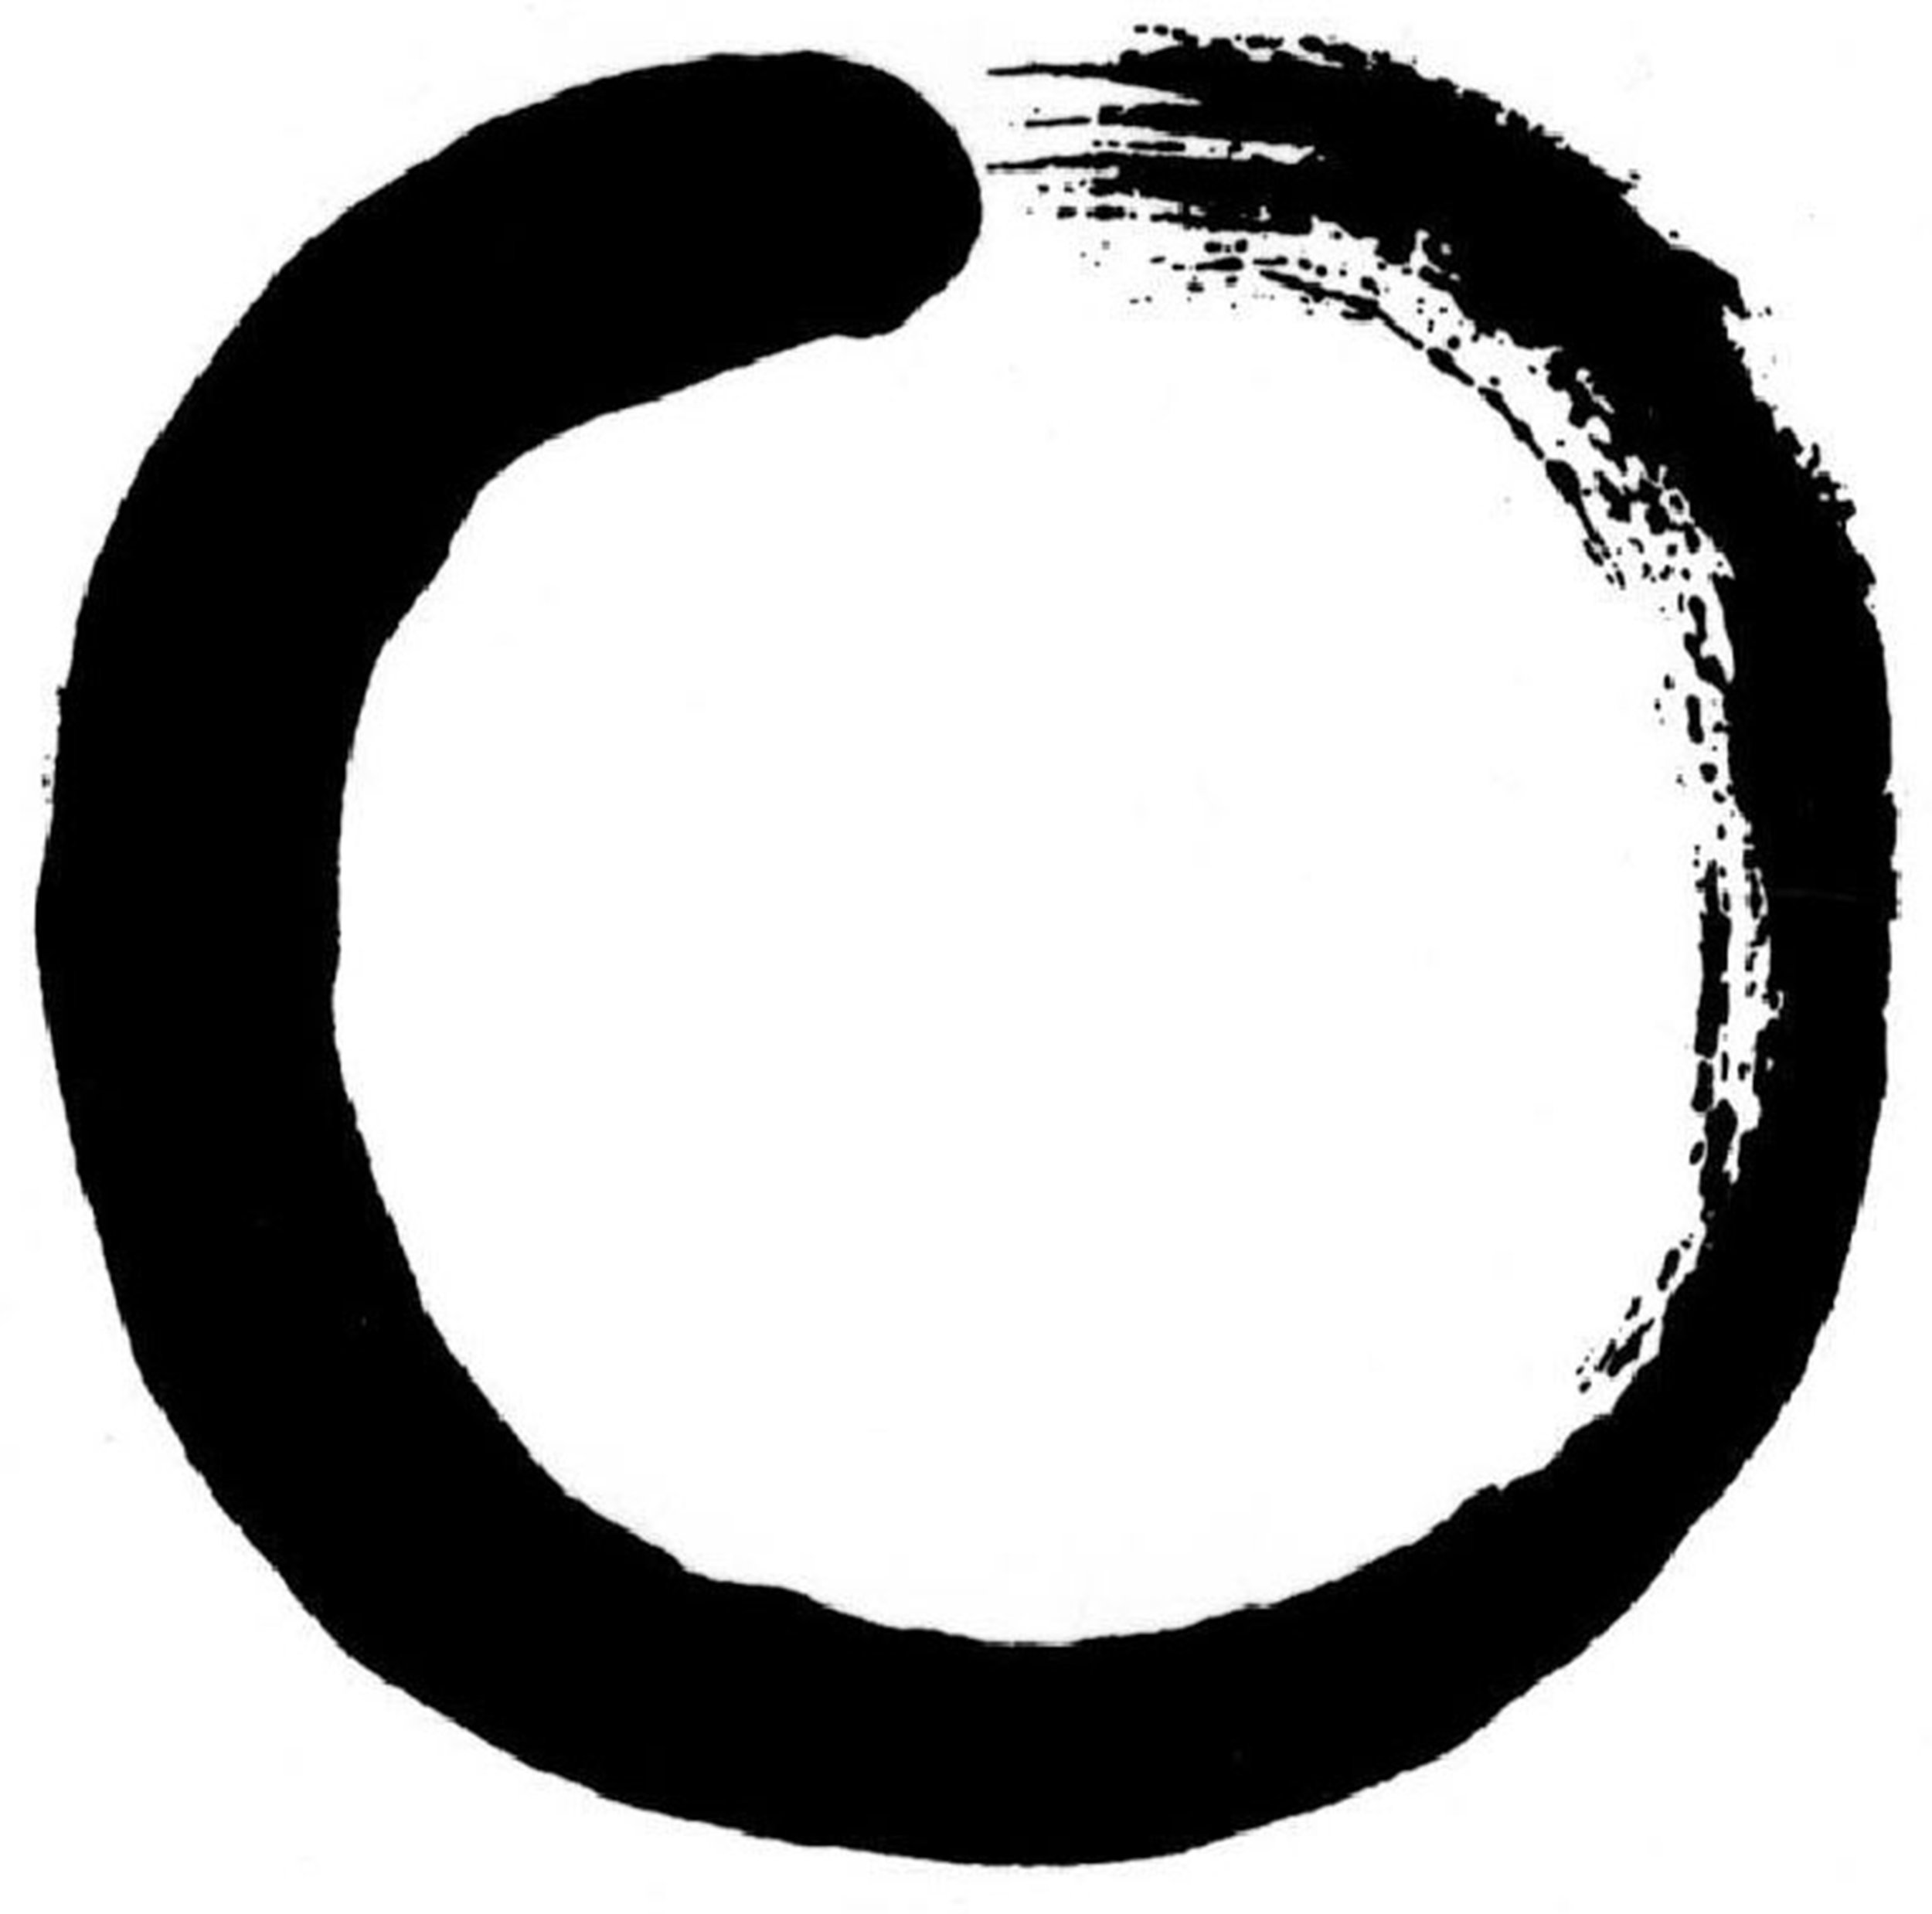 Confuscius Asked Lao Tzu About the Ultimate Way… - with Stephen Walker